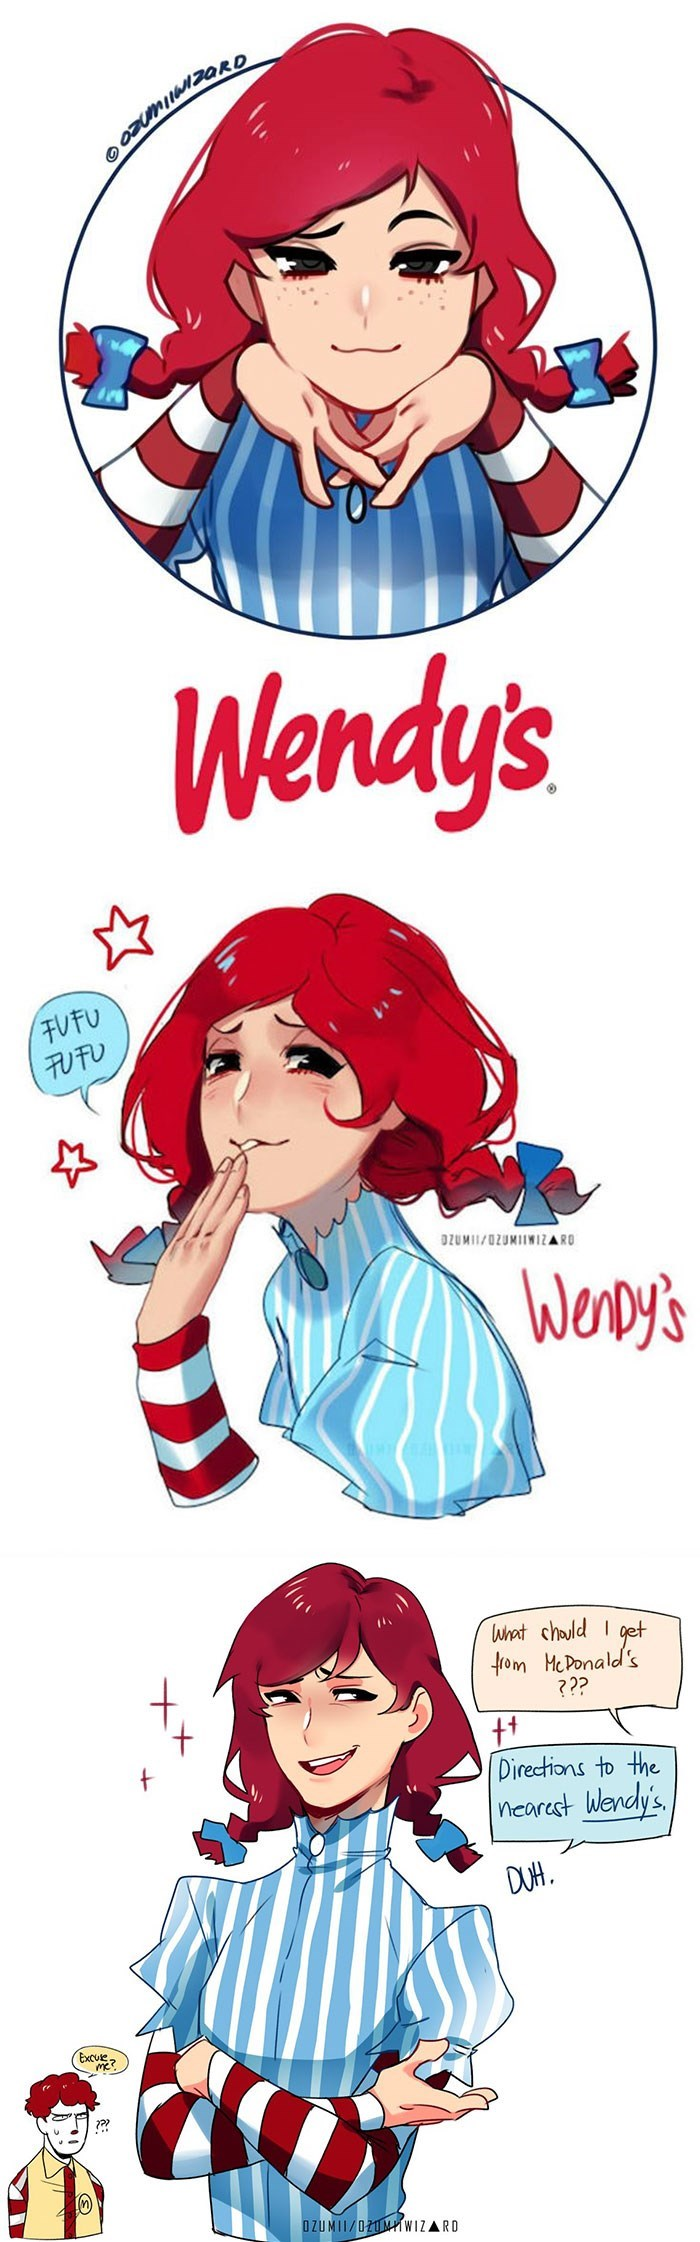 Cartoon - Wendy's FUFU 刊刊 OZUMI/0ZUMWIZARD WerDy's Wrat chould I get from McPonald's ??? tt Directions to the nearest Wendy's DUH. Excue OZUMII/021MWIZARD